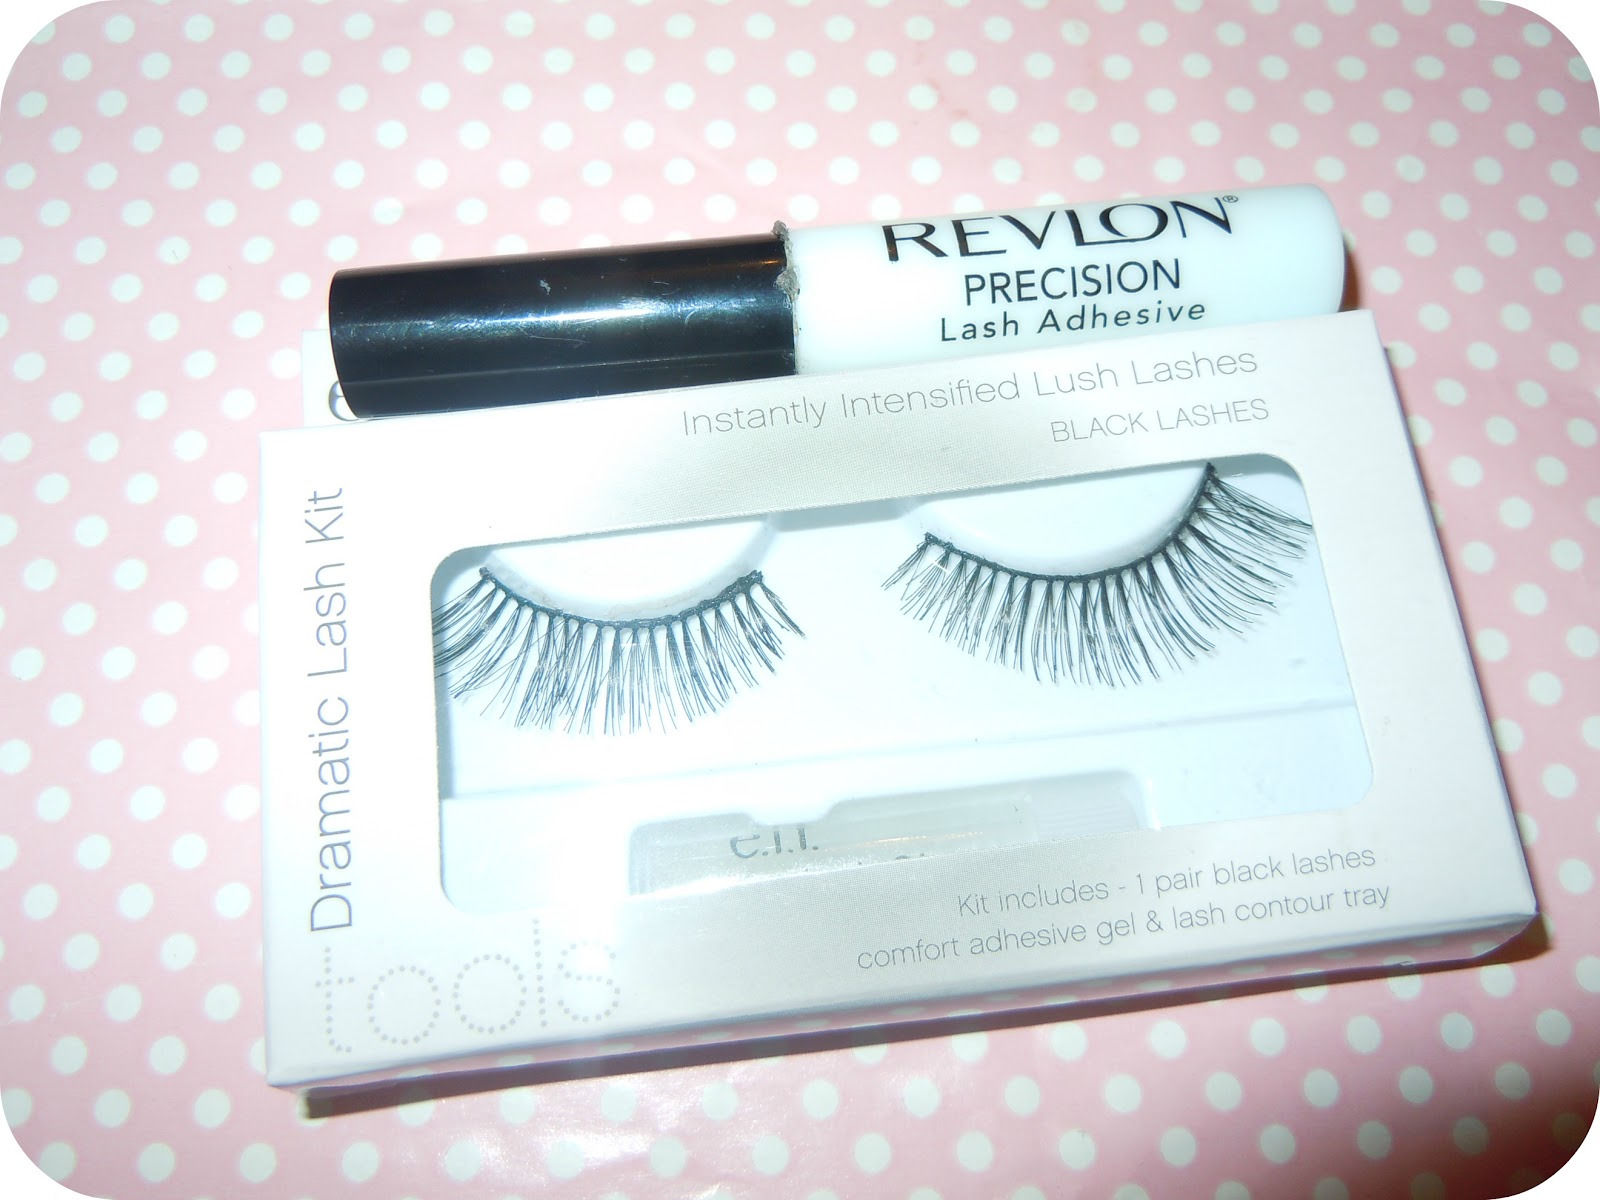 Bee Mama Beauty Parenting Lifestyle Blog Elf Dramatic Lash Kit Cosmetics Clear Brow Ampamp Mascara Crystal I Had To Cut 2 Little Pieces Off The End Of Each Strip So Theyd Fit My Eyes Perfectly Applied All Makeup Including Gel Liner